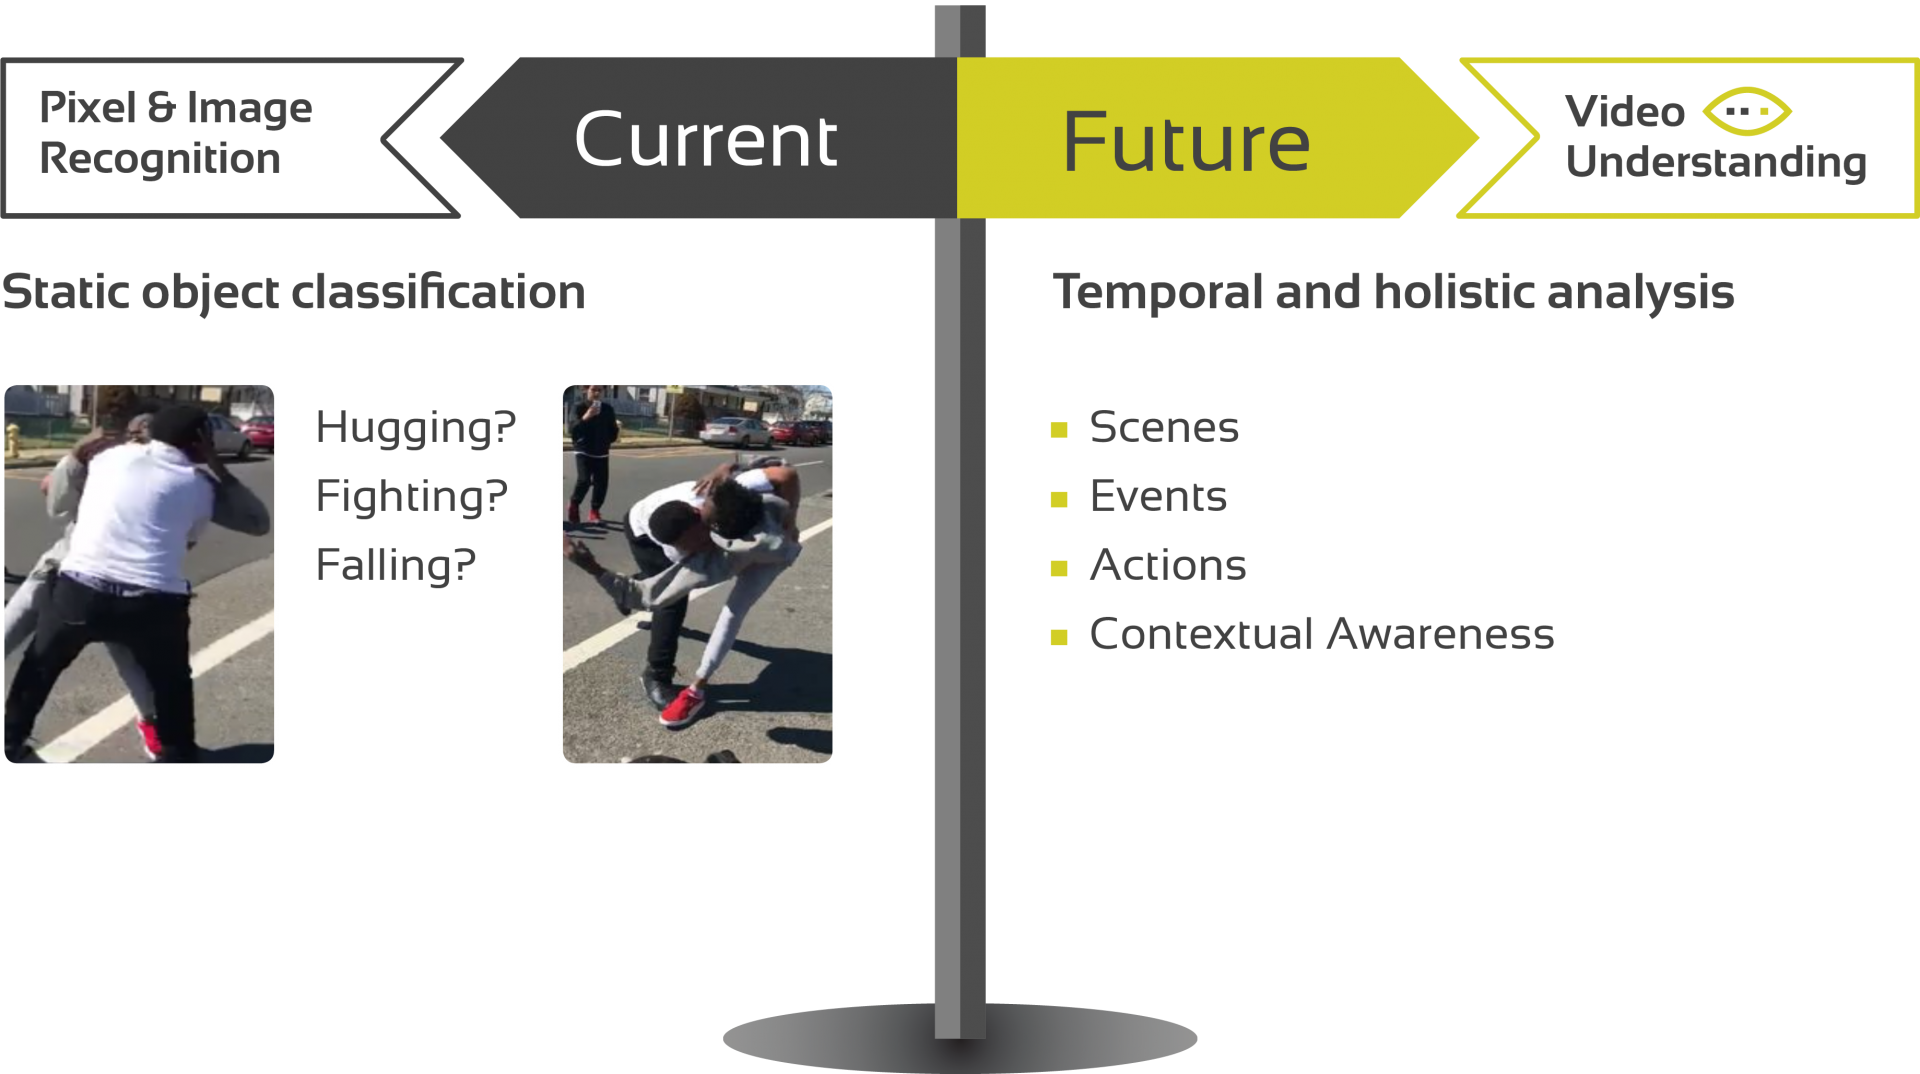 Pixel and image recognition diagram showing the future of video analytics